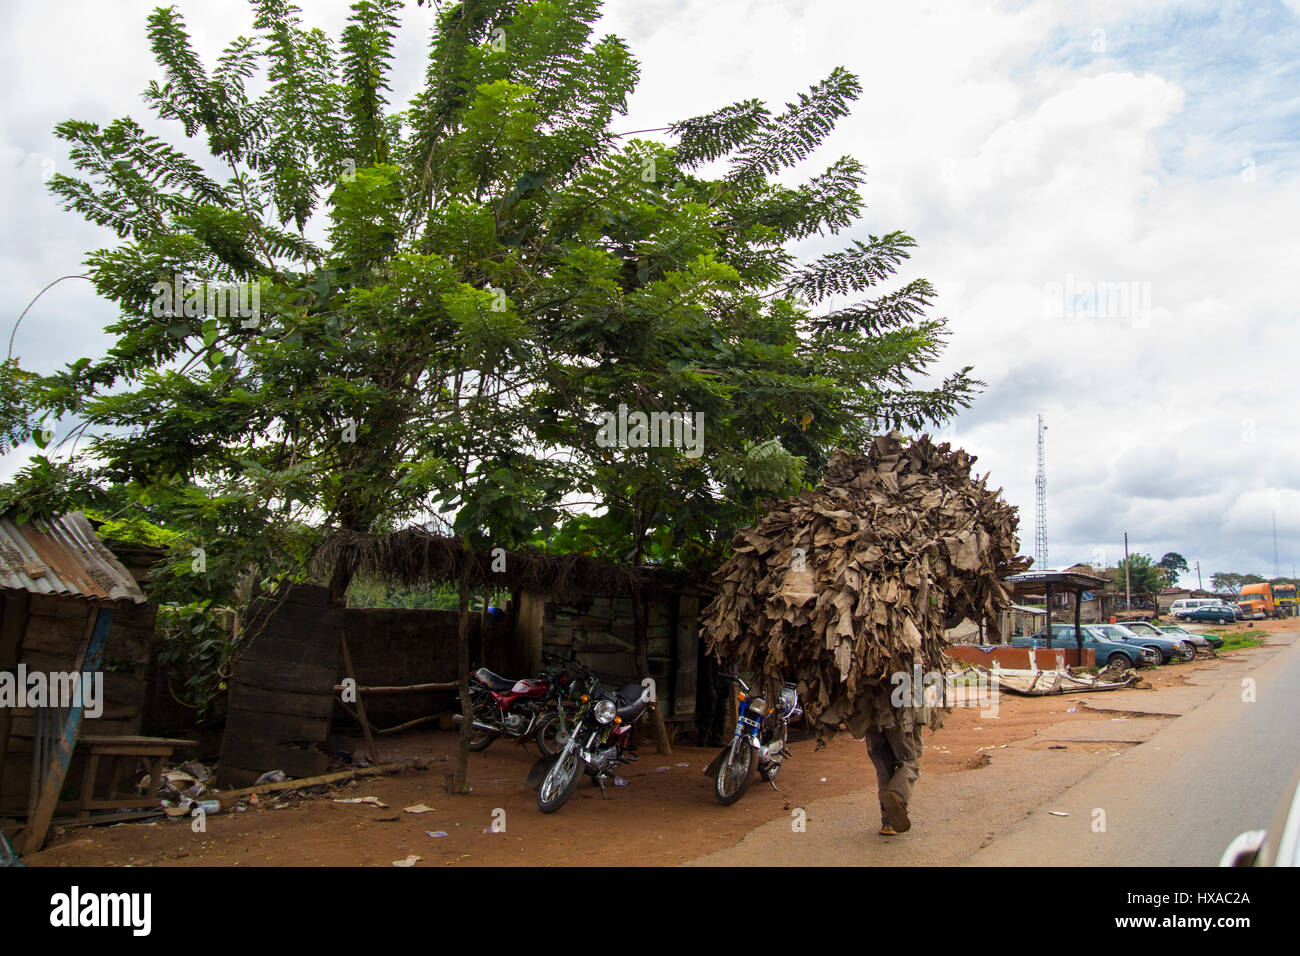 Single man carrying tobacco leaves in the head, in a road at the city of Lagos, the largest city in Nigeria and - Stock Image